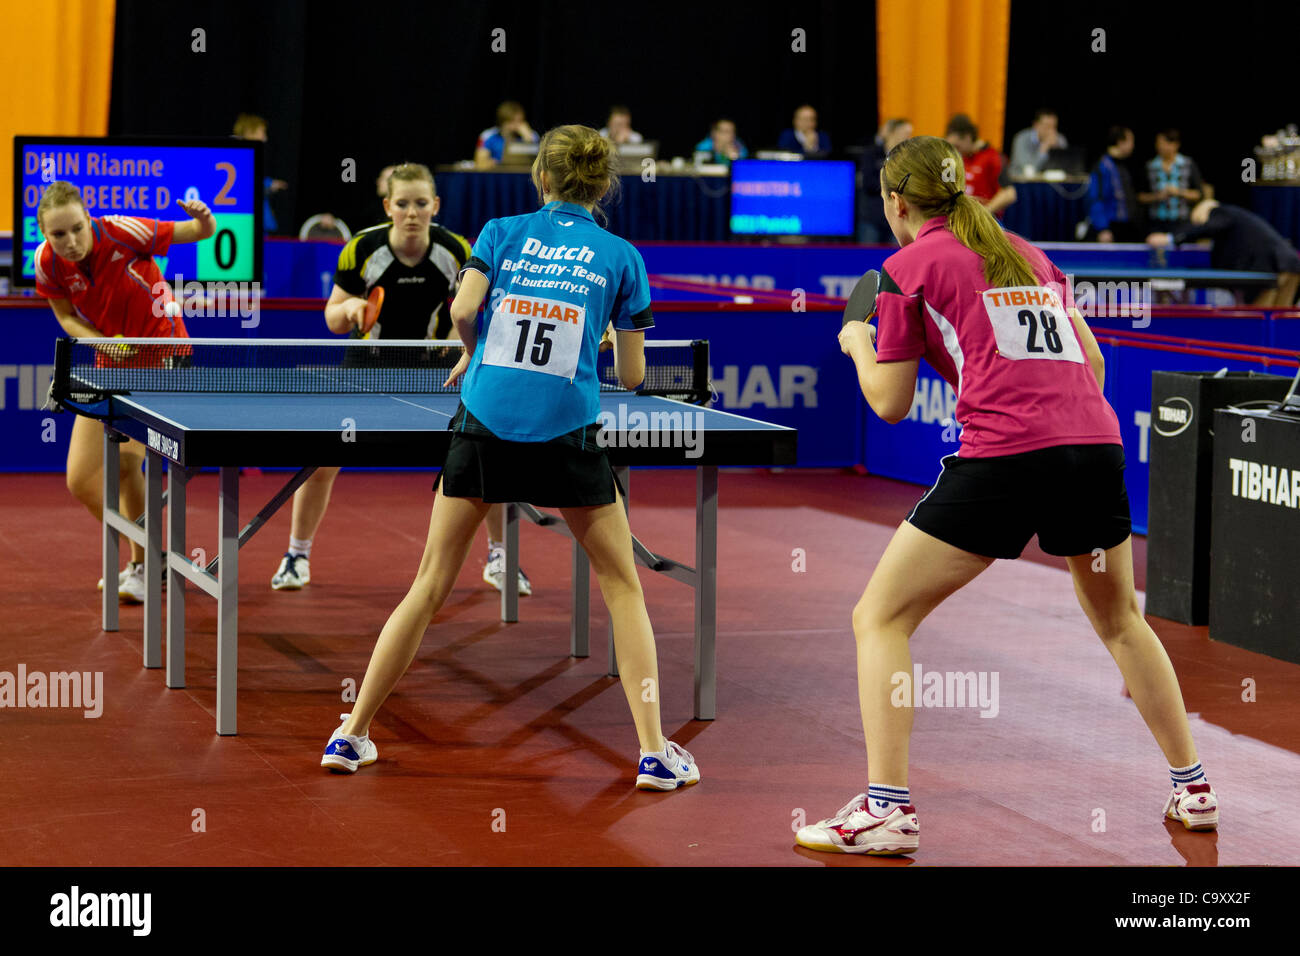 EINDHOVEN (Pays-Bas), 03/03/2012. Aperçu d'un match de double dames au tennis de table championnats 2012 Photo Stock